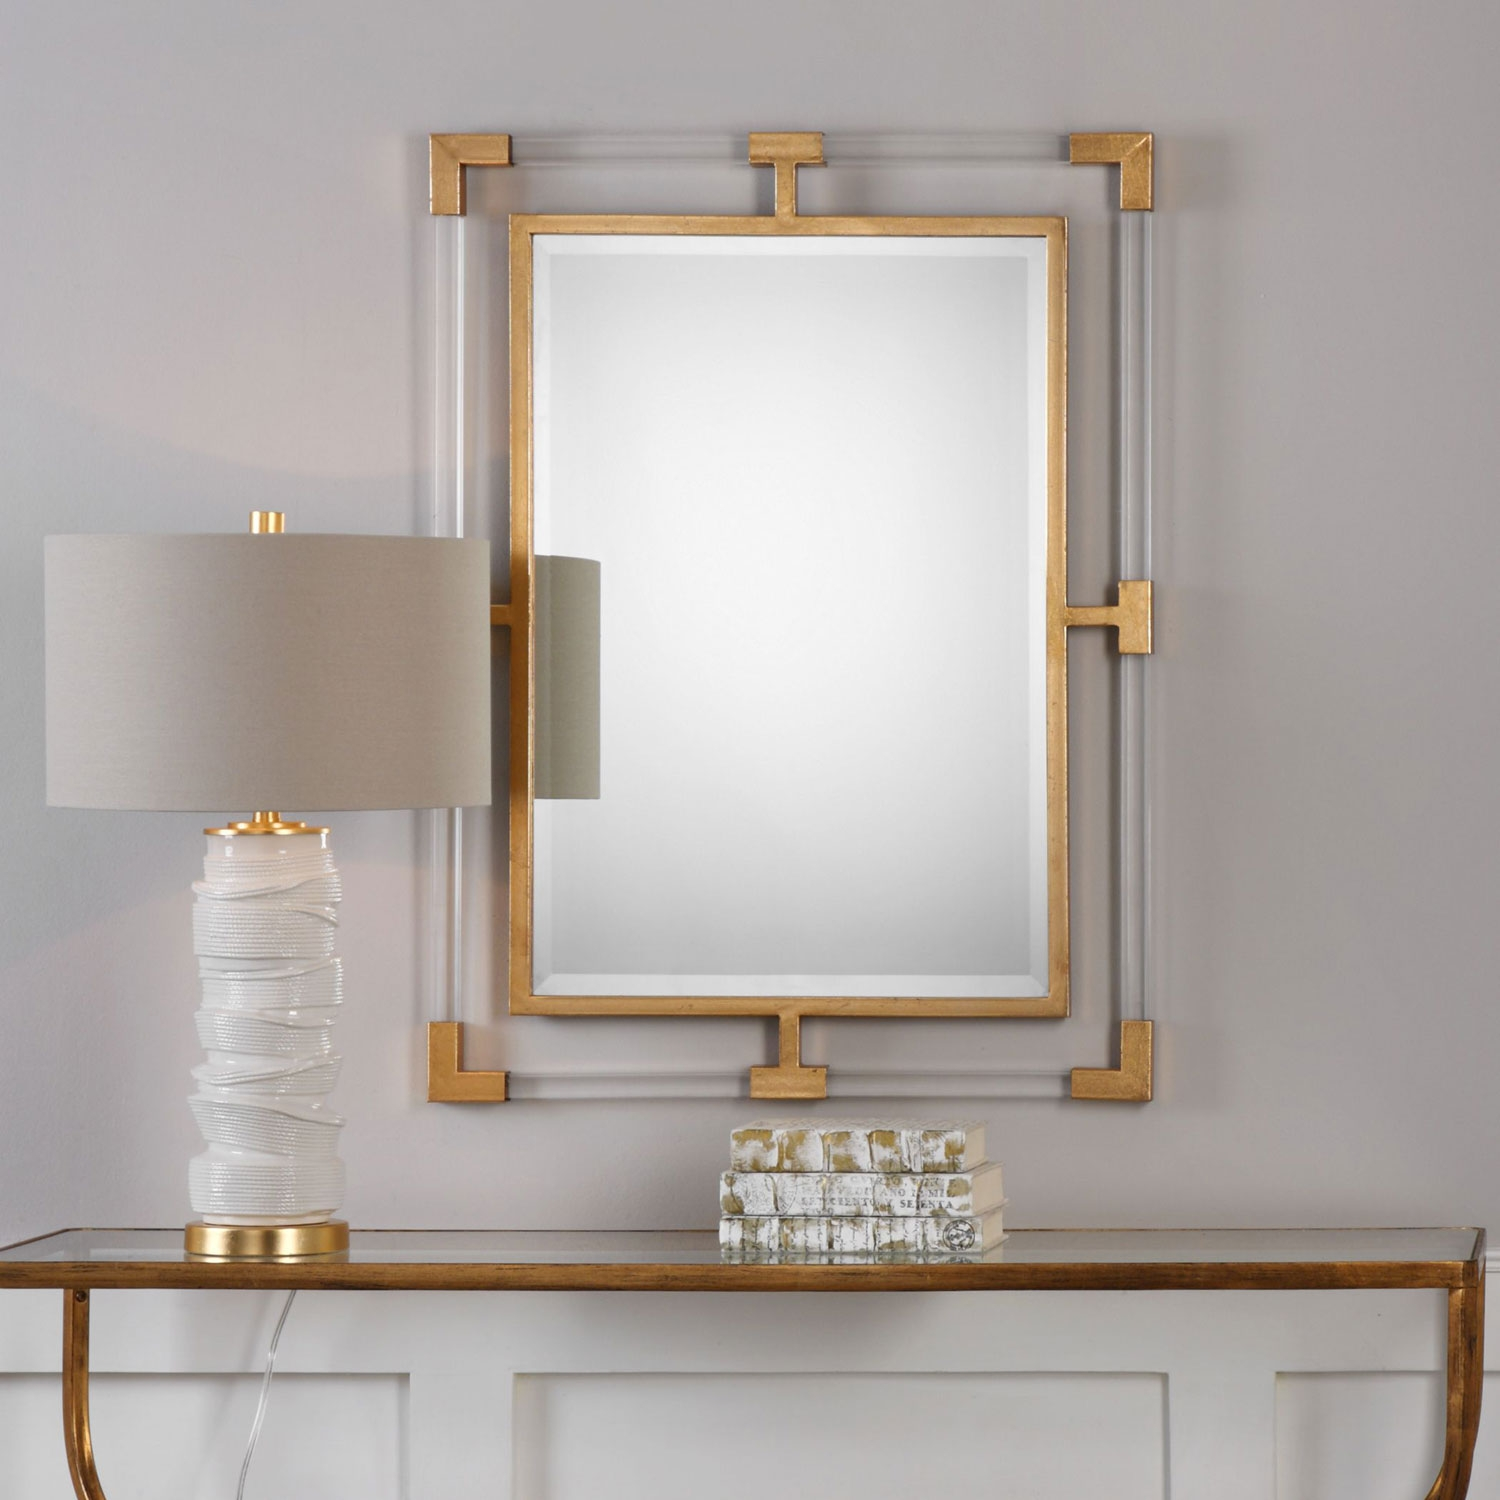 Balkan Modern Gold Wall Mirror Uttermost Rectangle Mirrors Home Decor Within Modern Gold Mirror (View 4 of 15)